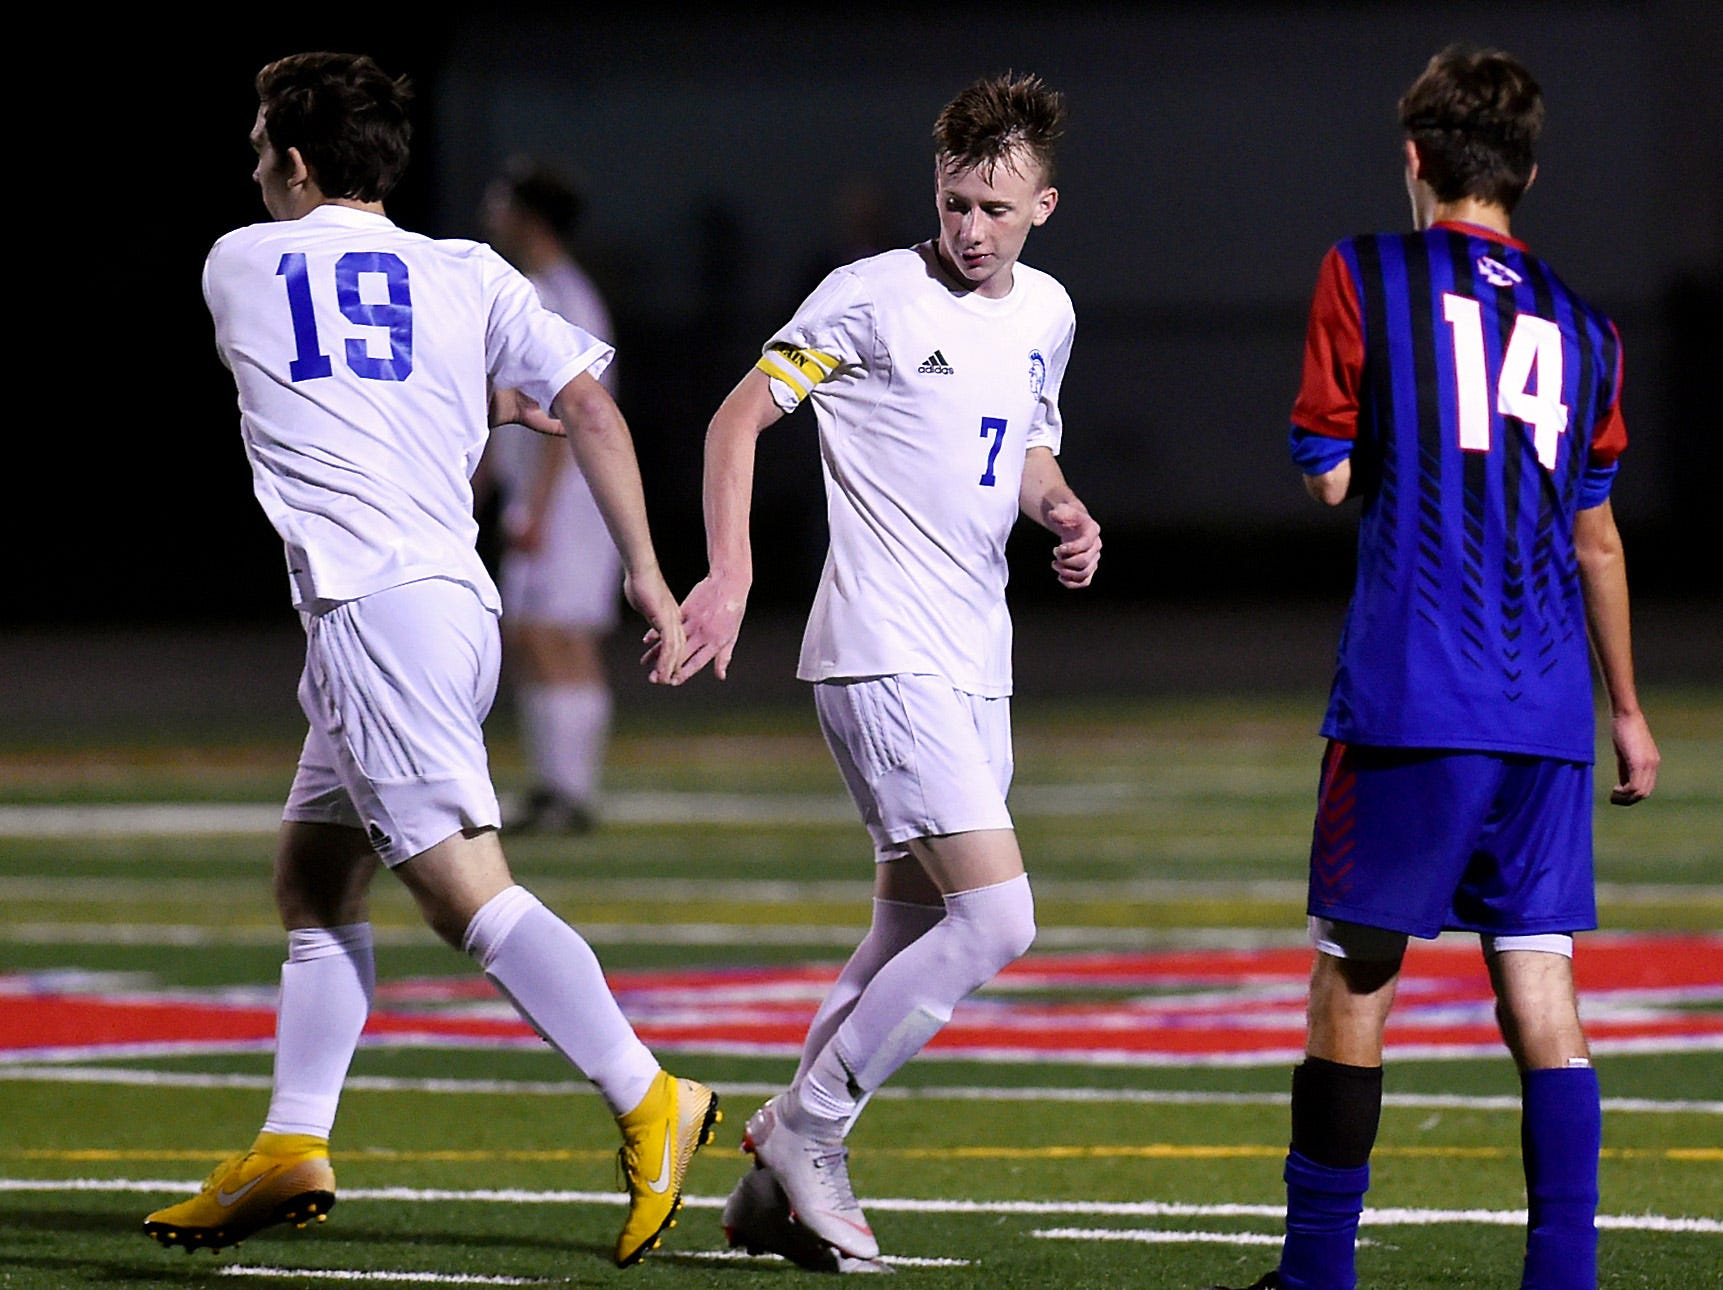 Jack Coleman, a junior soccer player at Maine-Endwell, during a game against Owego. October 3, 2018.